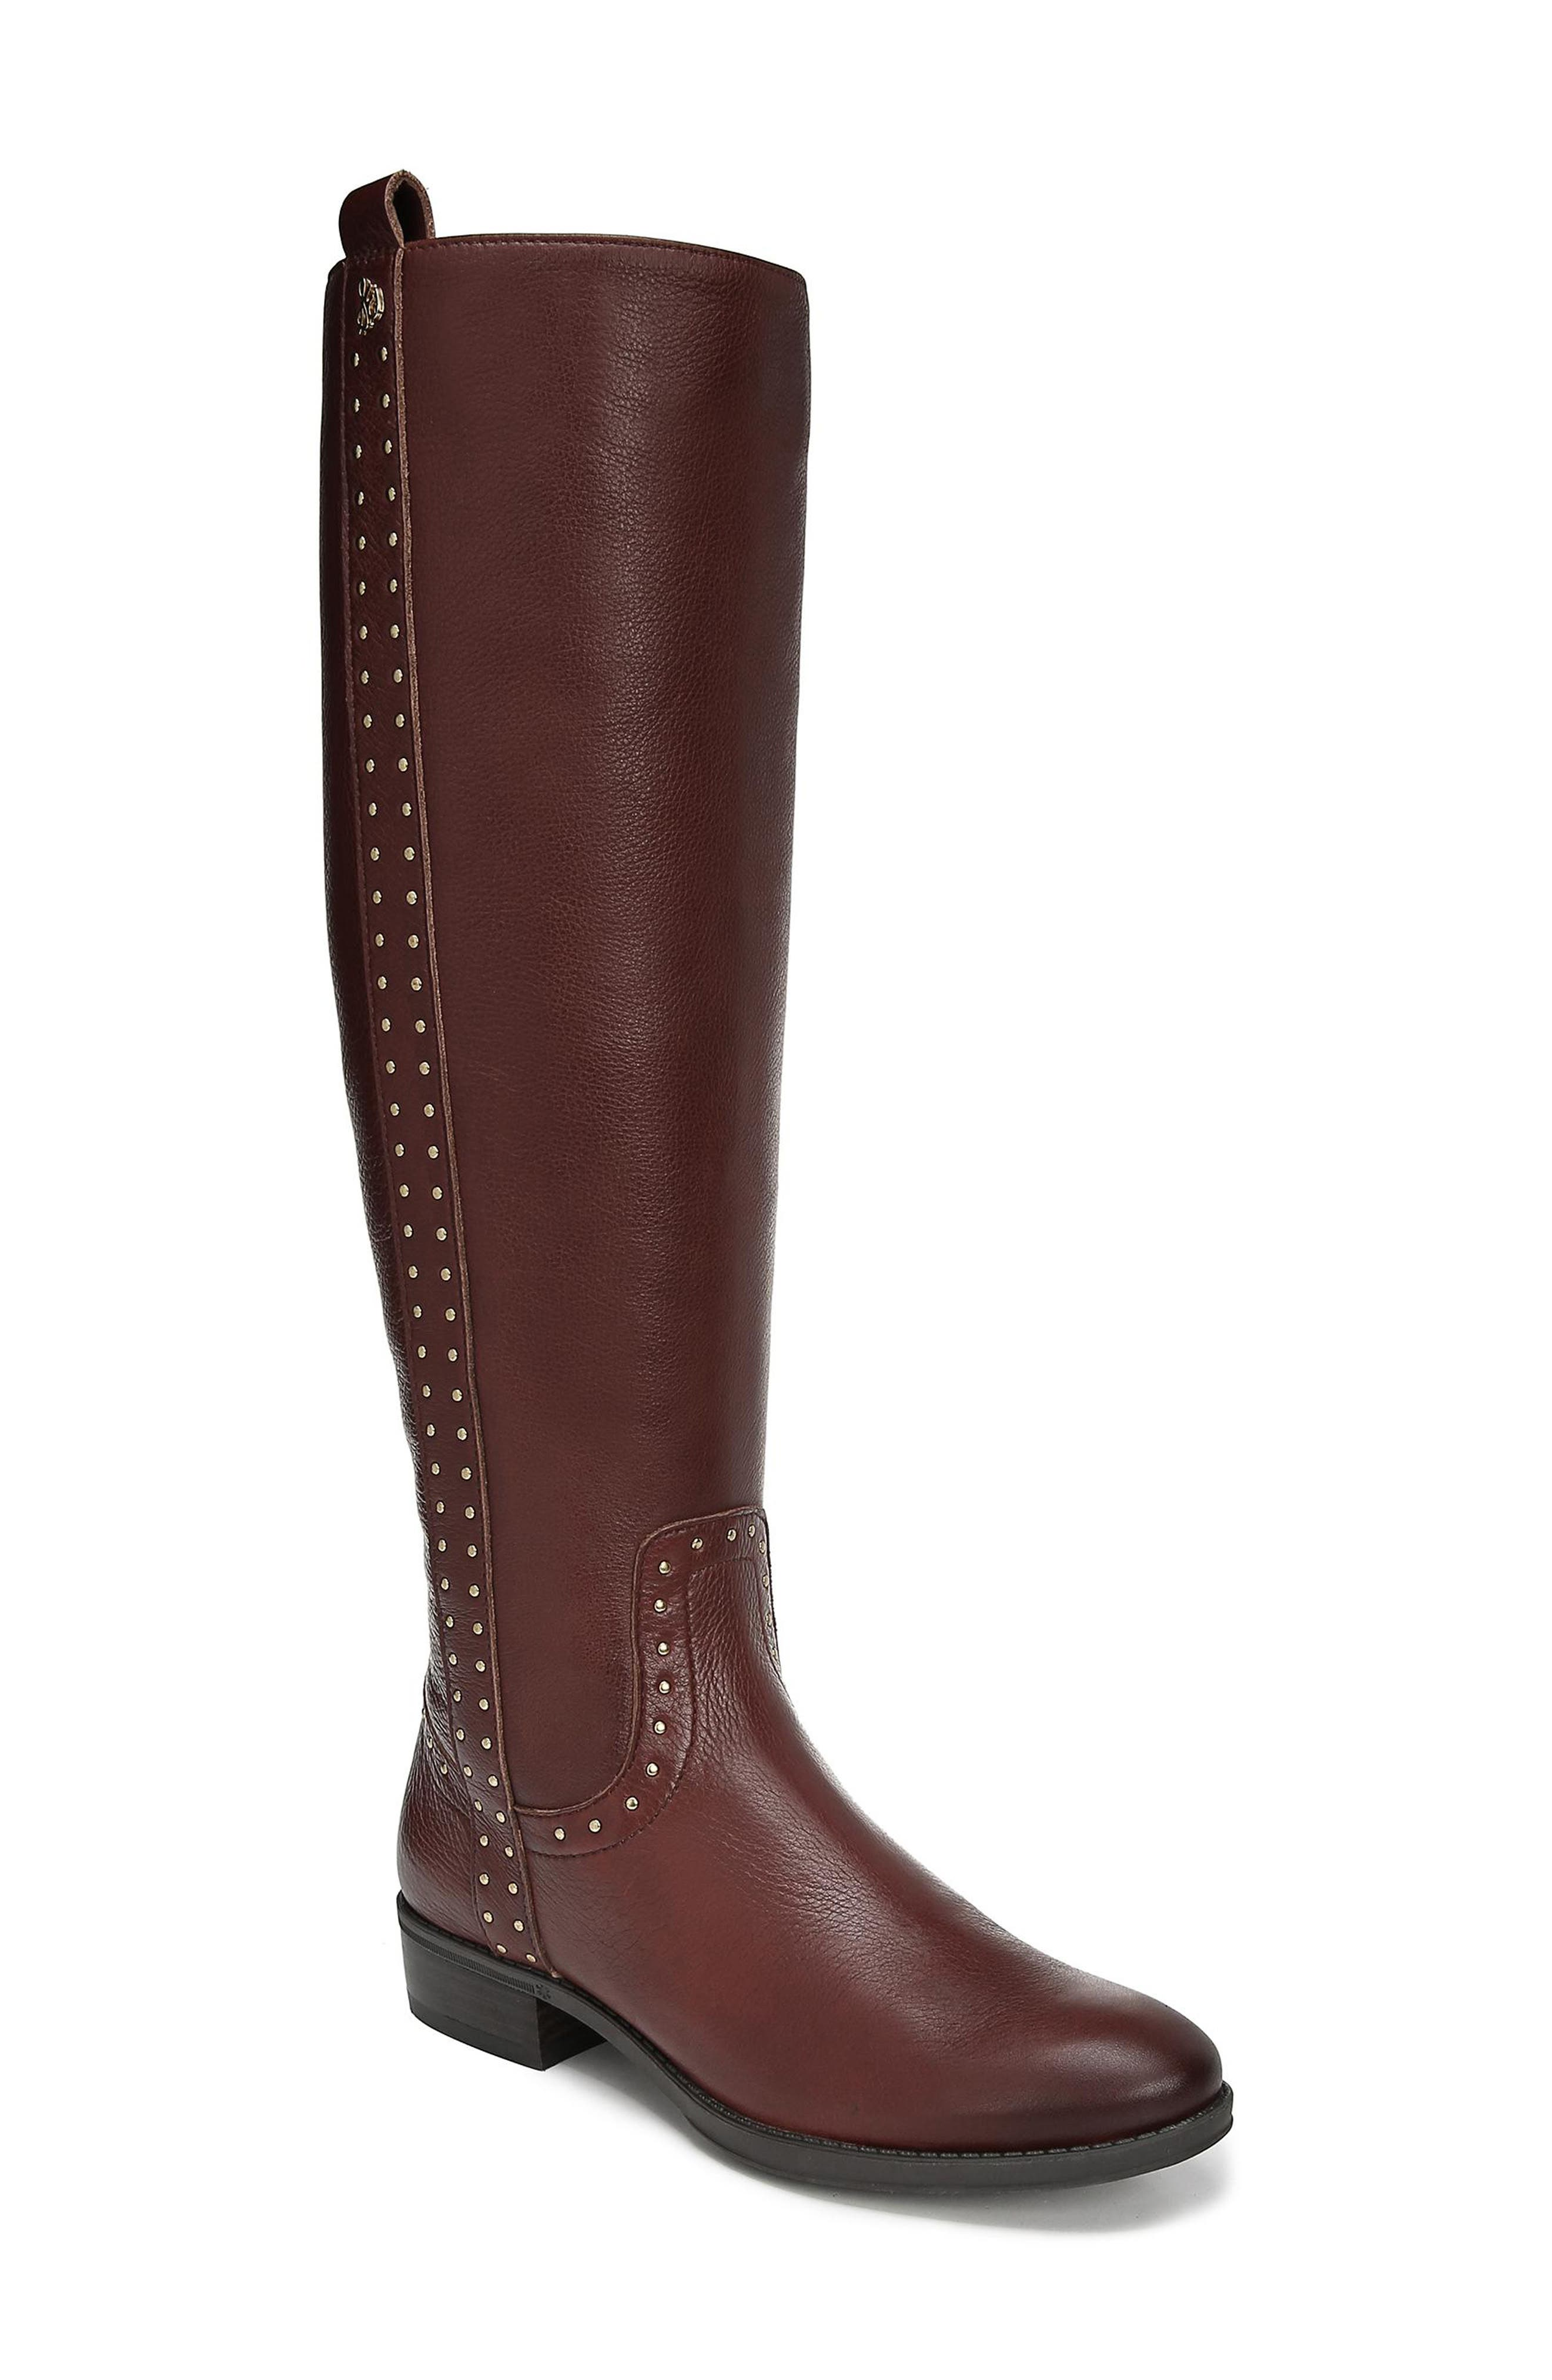 Prina Riding Boot,                             Main thumbnail 1, color,                             REDWOOD BROWN LEATHER